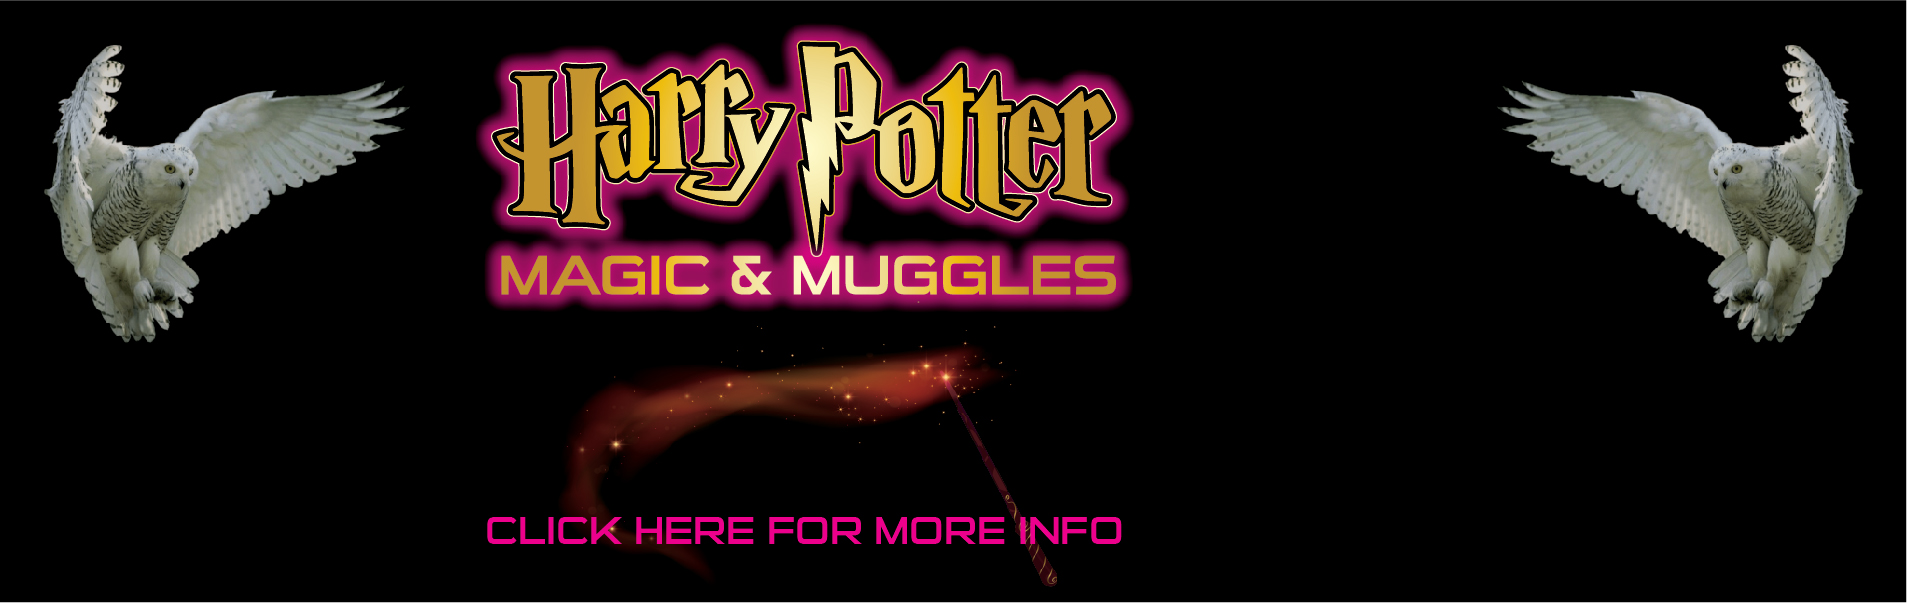 AT-HARRY-POTTER-MAGIC-MUGGLES